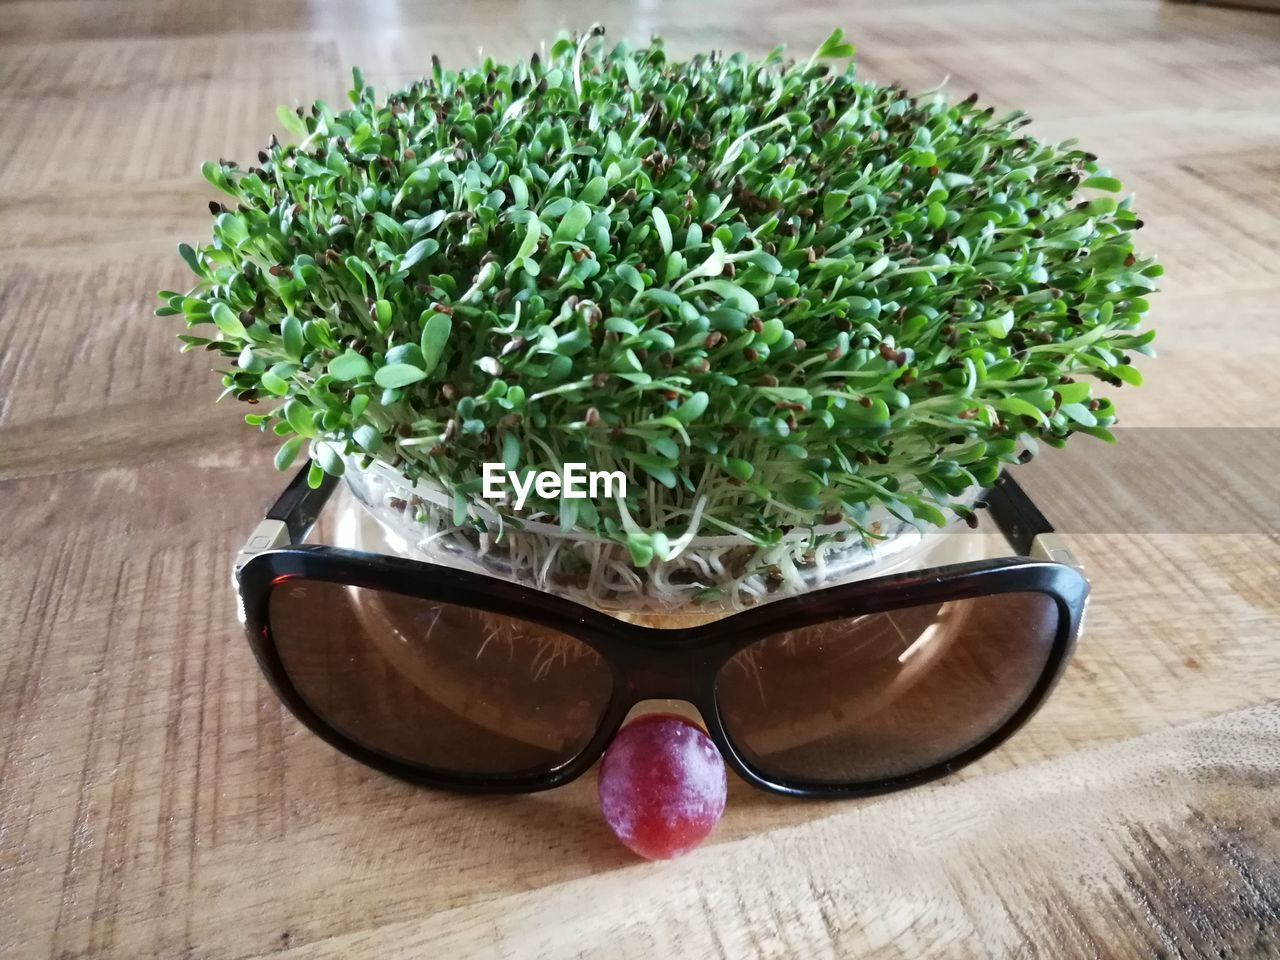 glasses, green color, table, sunglasses, fashion, plant, wood - material, indoors, leaf, plant part, still life, close-up, food and drink, no people, food, nature, freshness, growth, herb, glass - material, eyewear, personal accessory